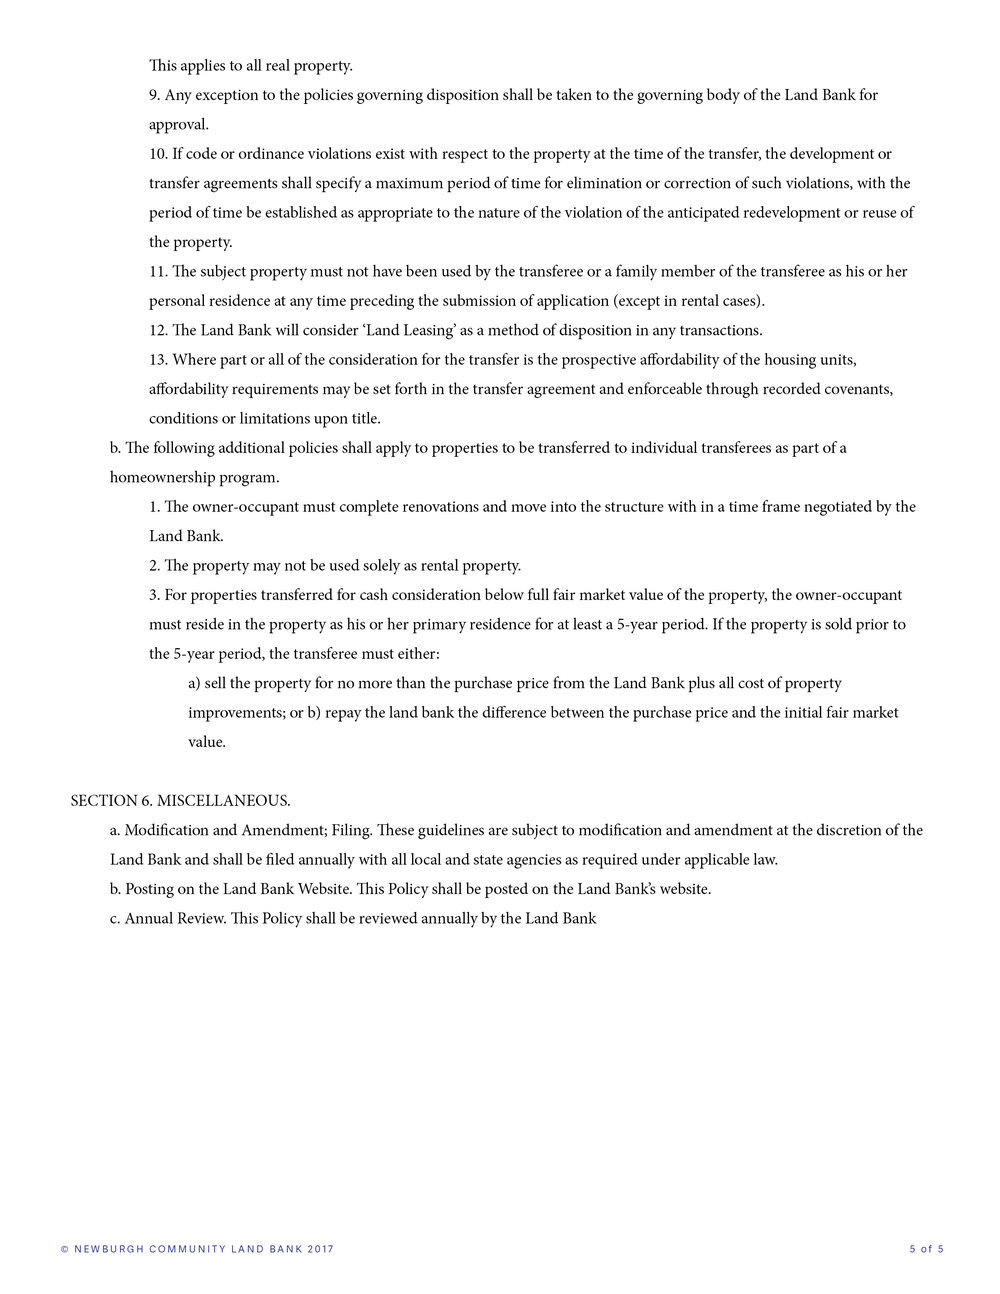 NCLB Disposition Policy5.jpg